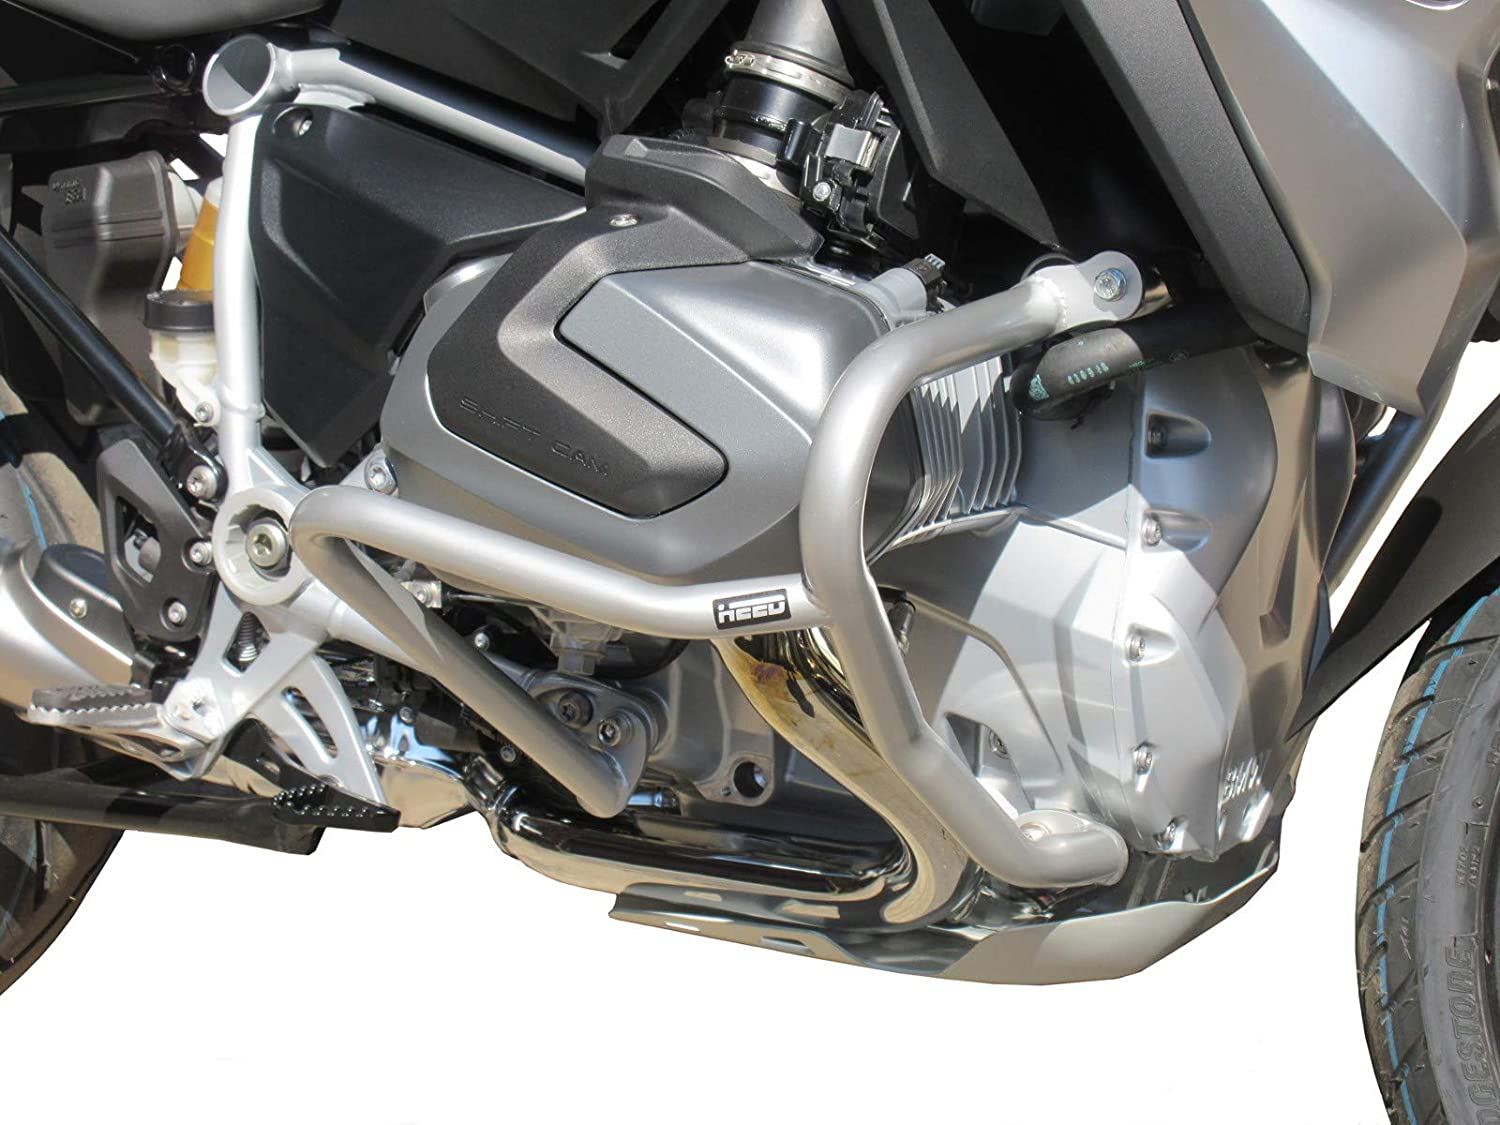 argento Paramotore HEED per R 1250 GS Basic